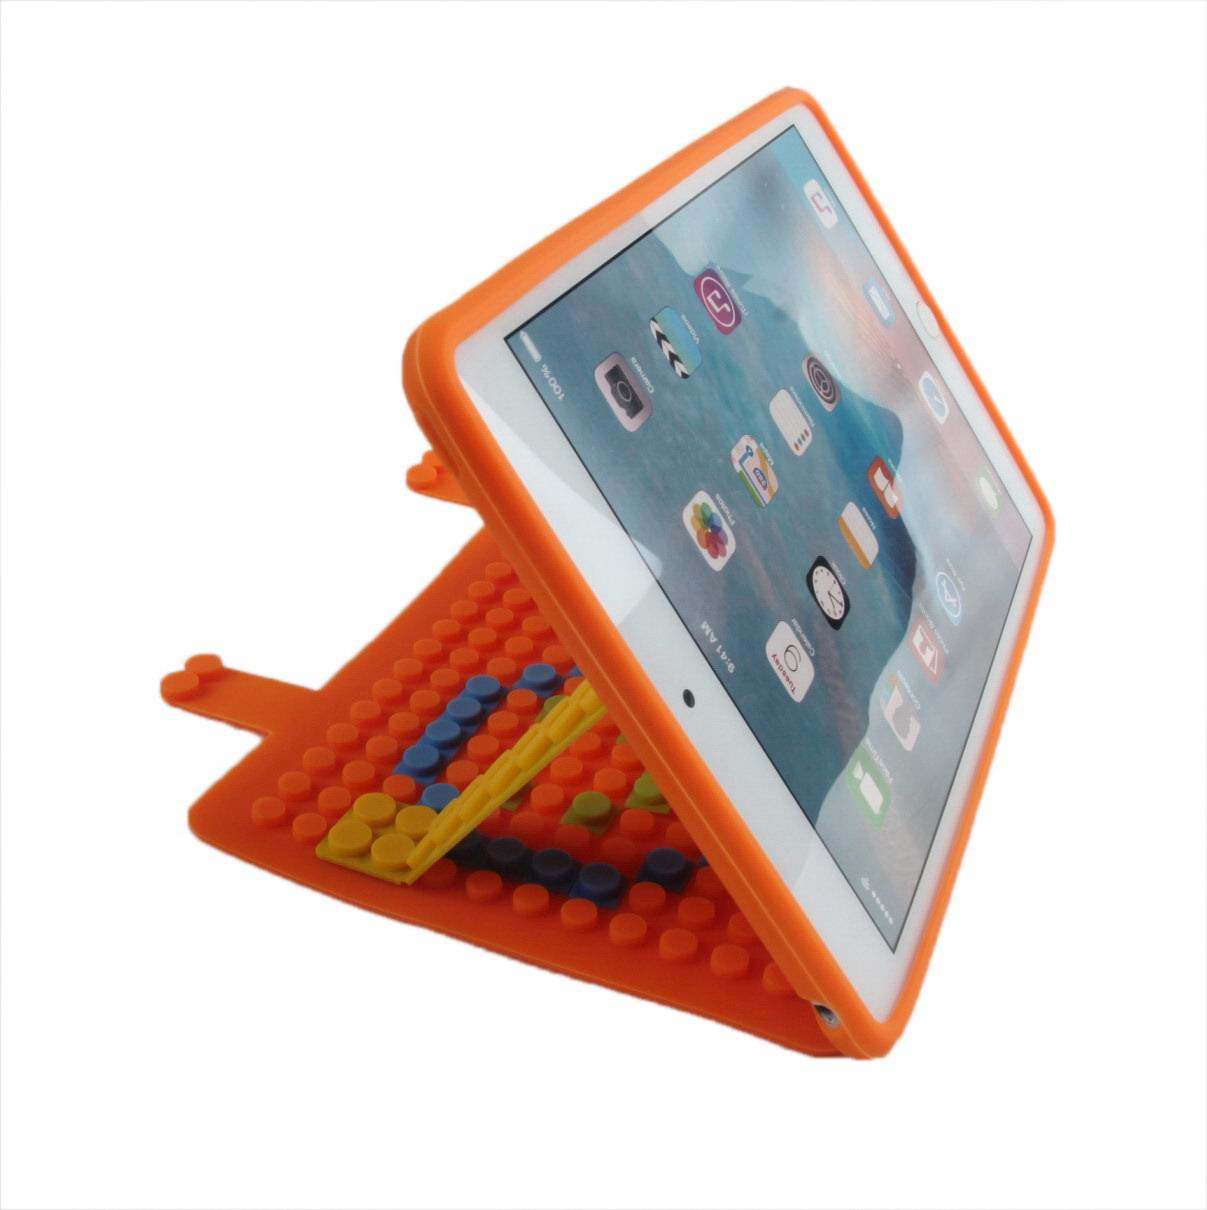 silicone non slip case made of a constructor for apple ipad 00